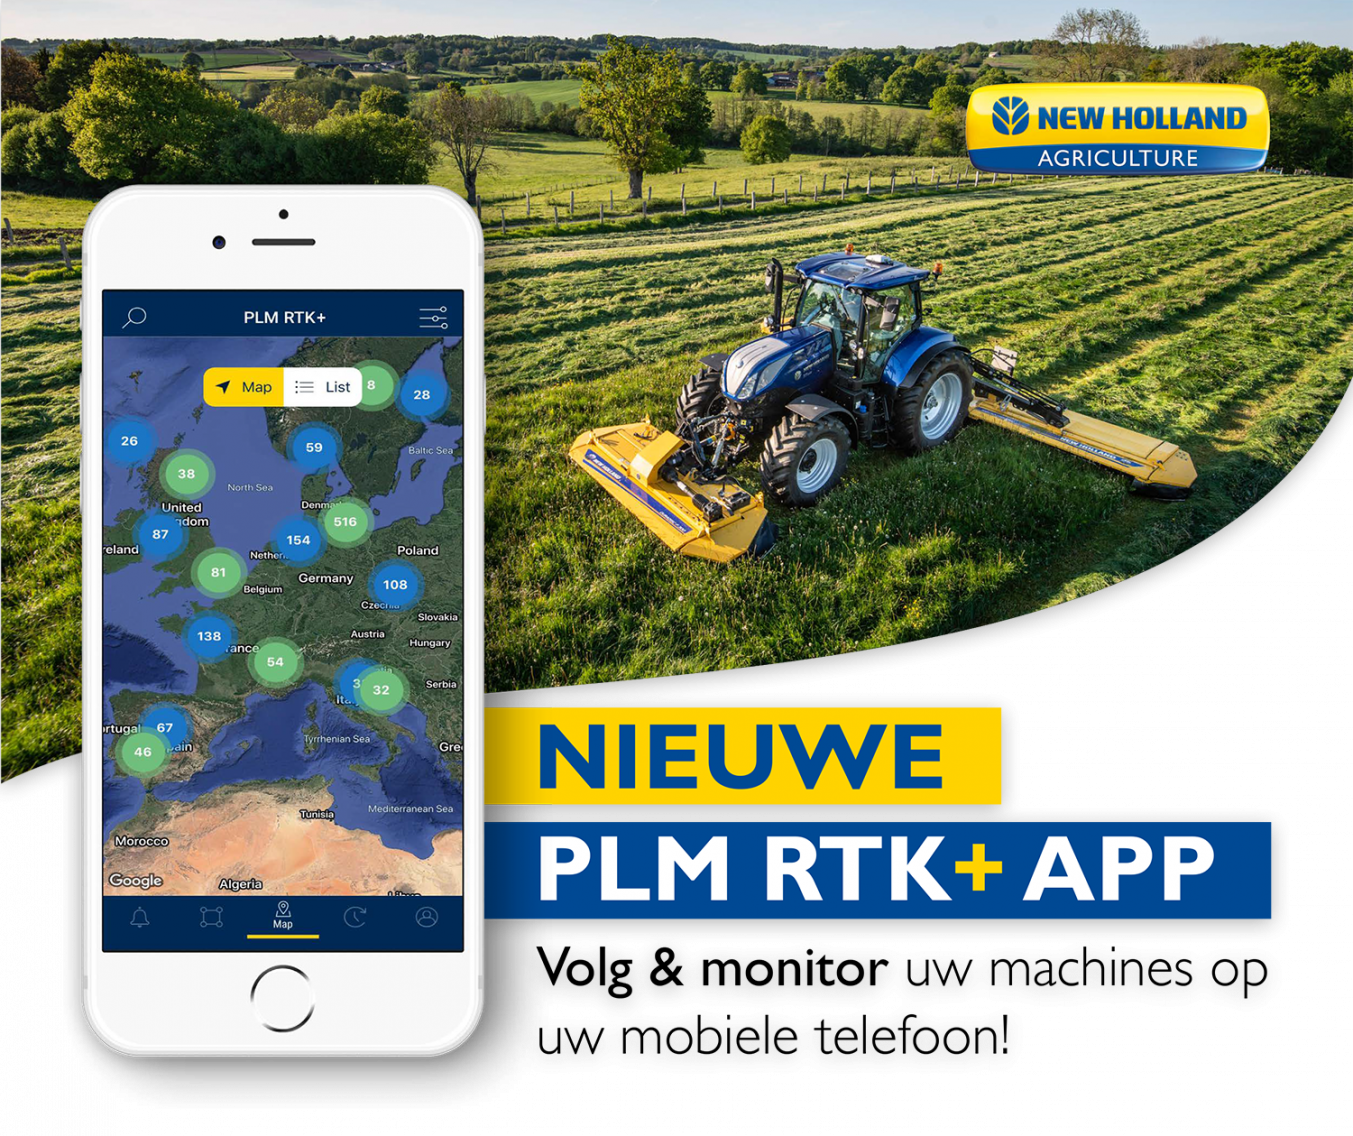 App_Flyer_NewHolland_NL.png